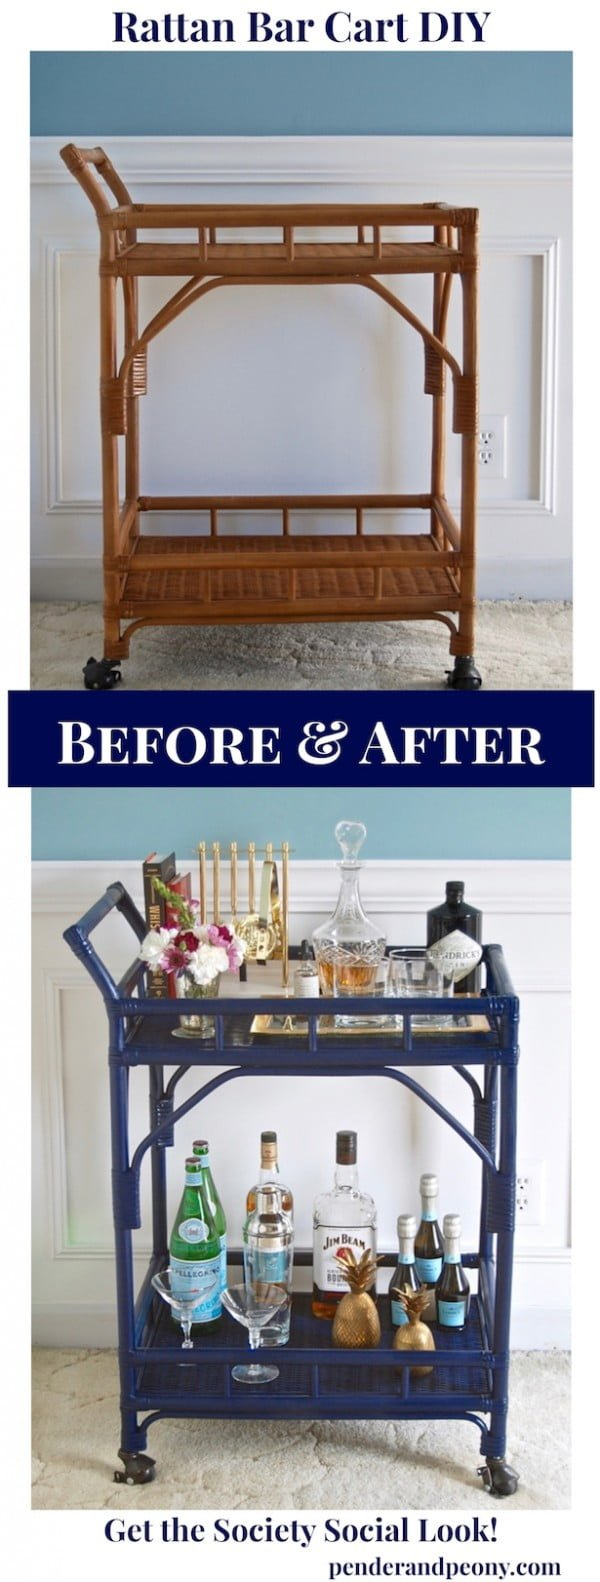 How to build a #DIY rattan bar cart #homedecor